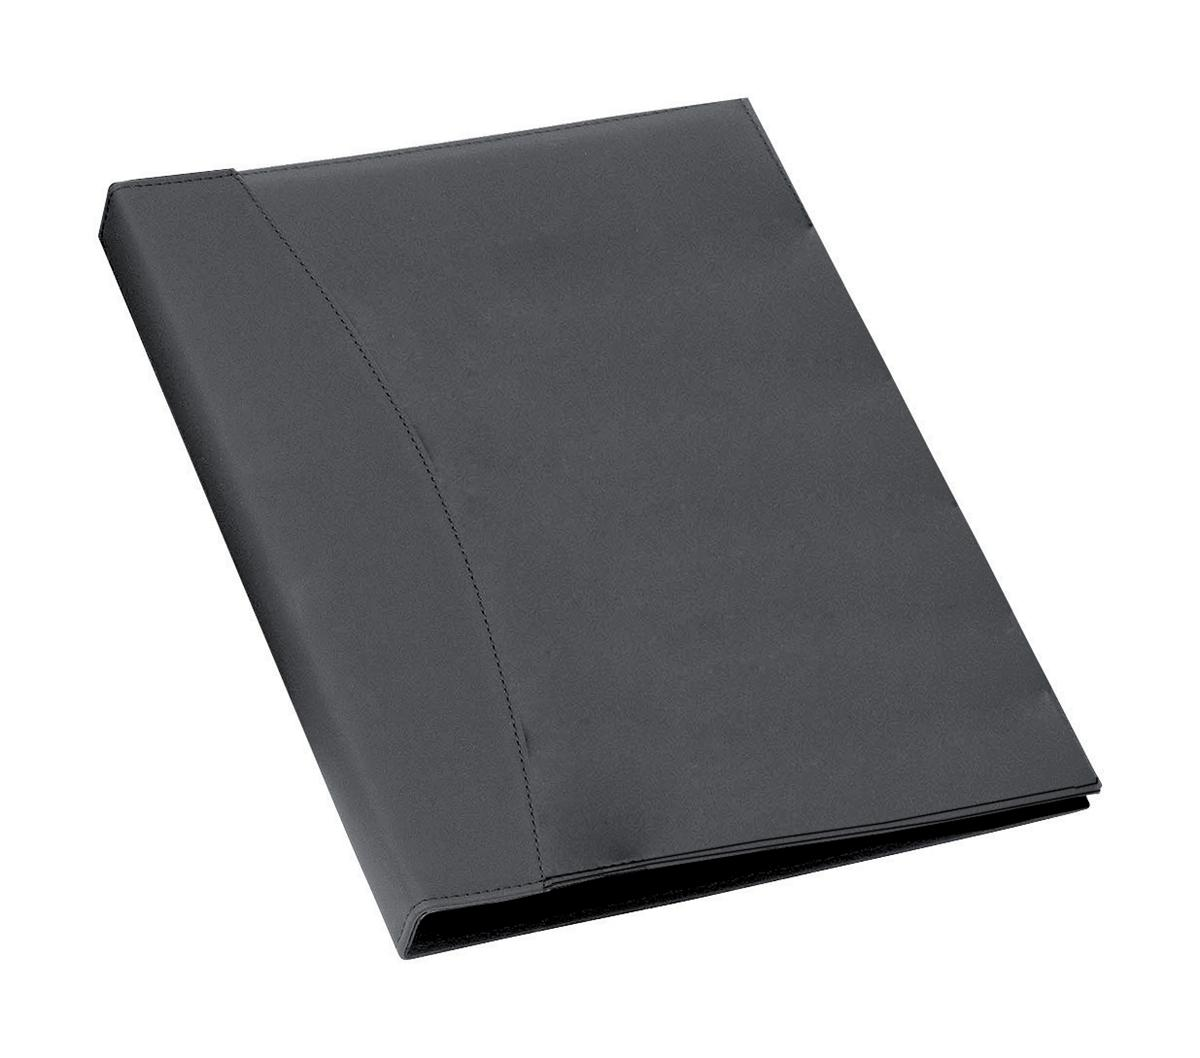 Image for Rexel Display Book Soft Touch 24 Pockets with Cover Smooth Black Ref 2101185